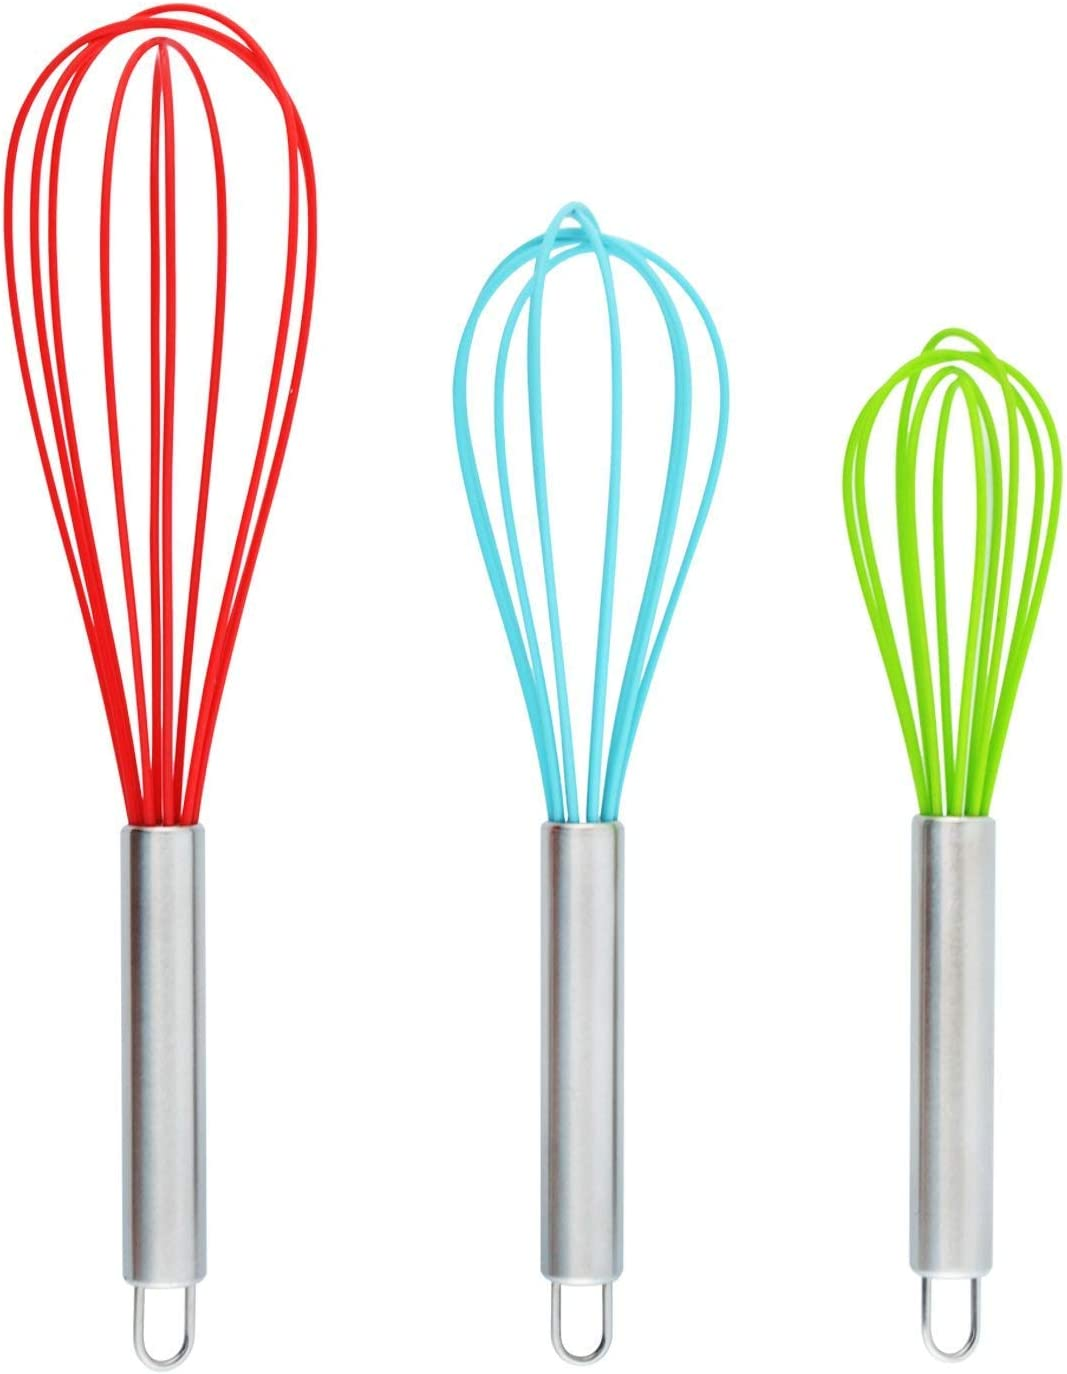 DRAGONN Set of 3 Multi-Color Silicone Whisks with Stainless Steel Handles, Milk & Egg Beater, Balloon Whisk for Blending, Whisking, Beating, and Stirring